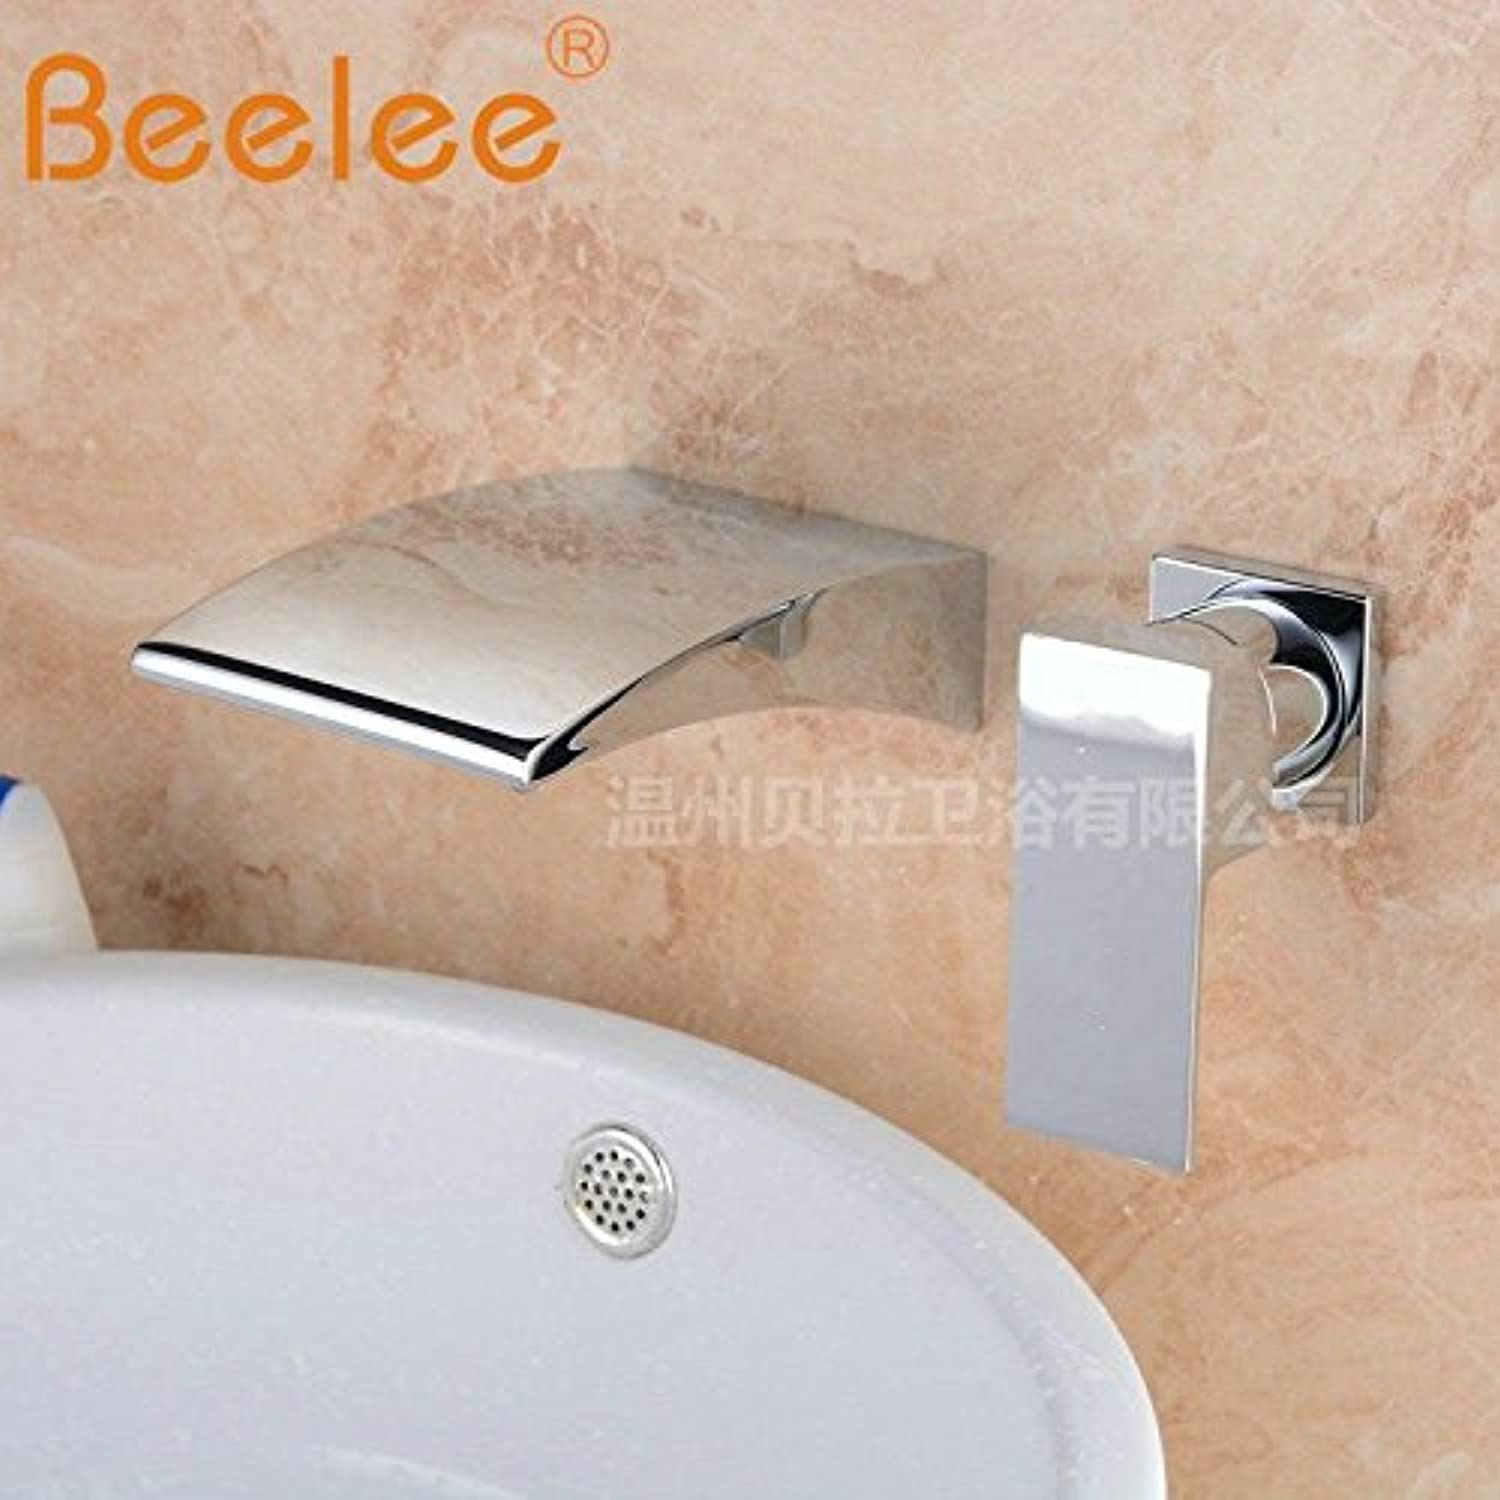 Lalaky Taps Faucet Kitchen Mixer Sink Waterfall Bathroom Mixer Basin Mixer Tap for Kitchen Bathroom and Washroom All Copper Waterfall Water Into The Wall Two Holes